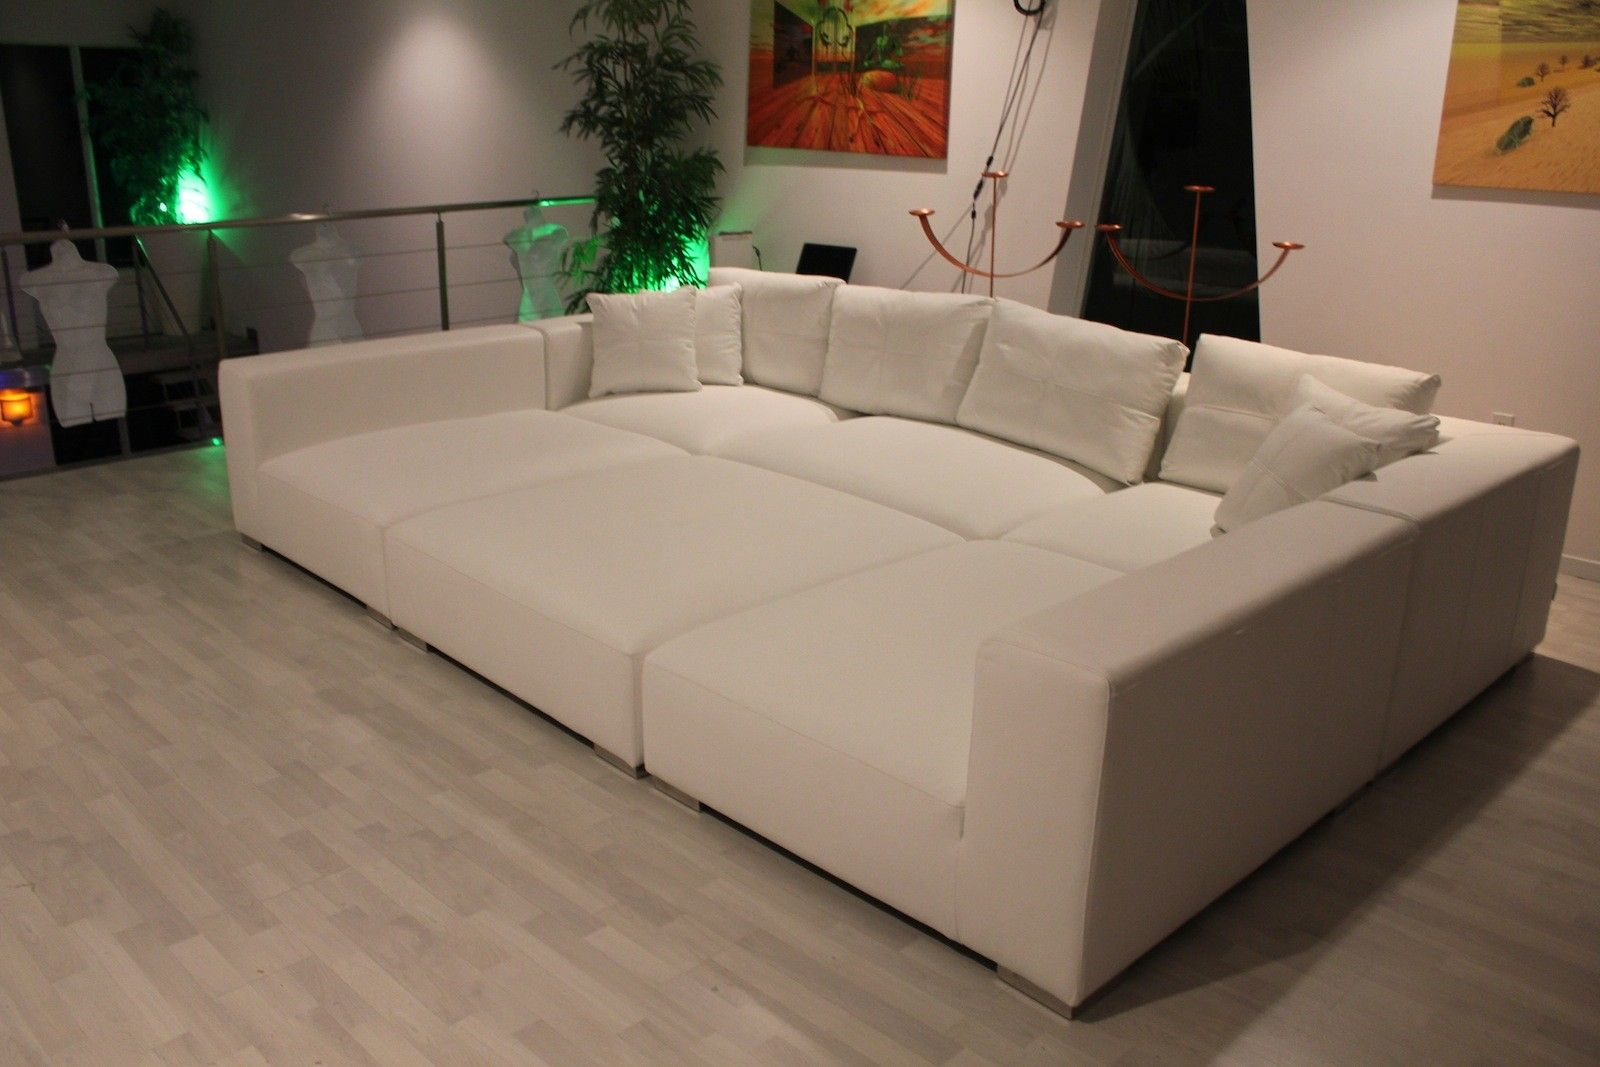 Furniture By Amandadisensi On Pinterest Modern Sectional